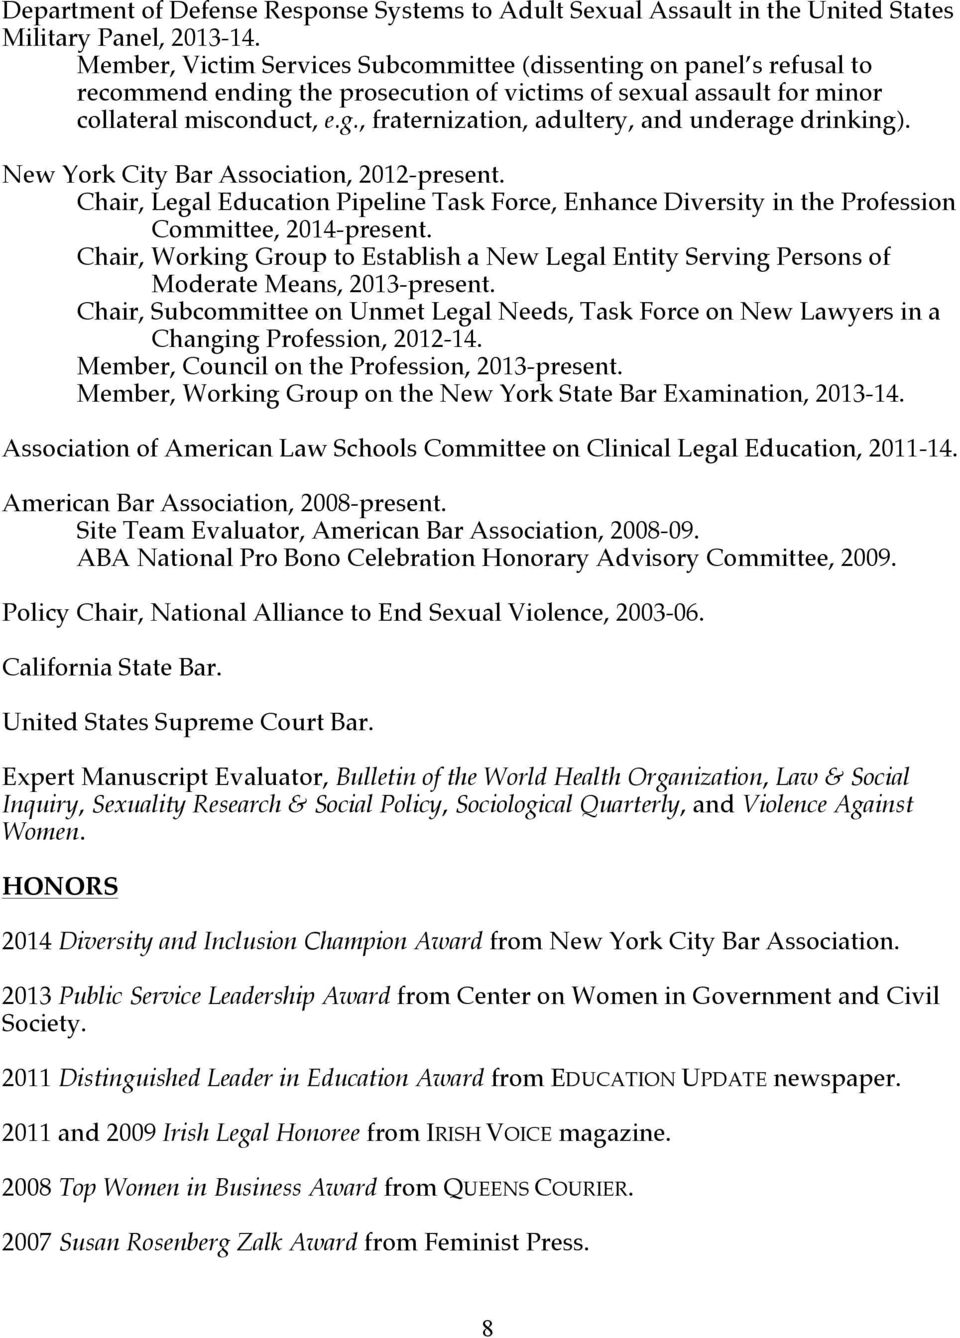 New York City Bar Association, 2012-present. Chair, Legal Education Pipeline Task Force, Enhance Diversity in the Profession Committee, 2014-present.